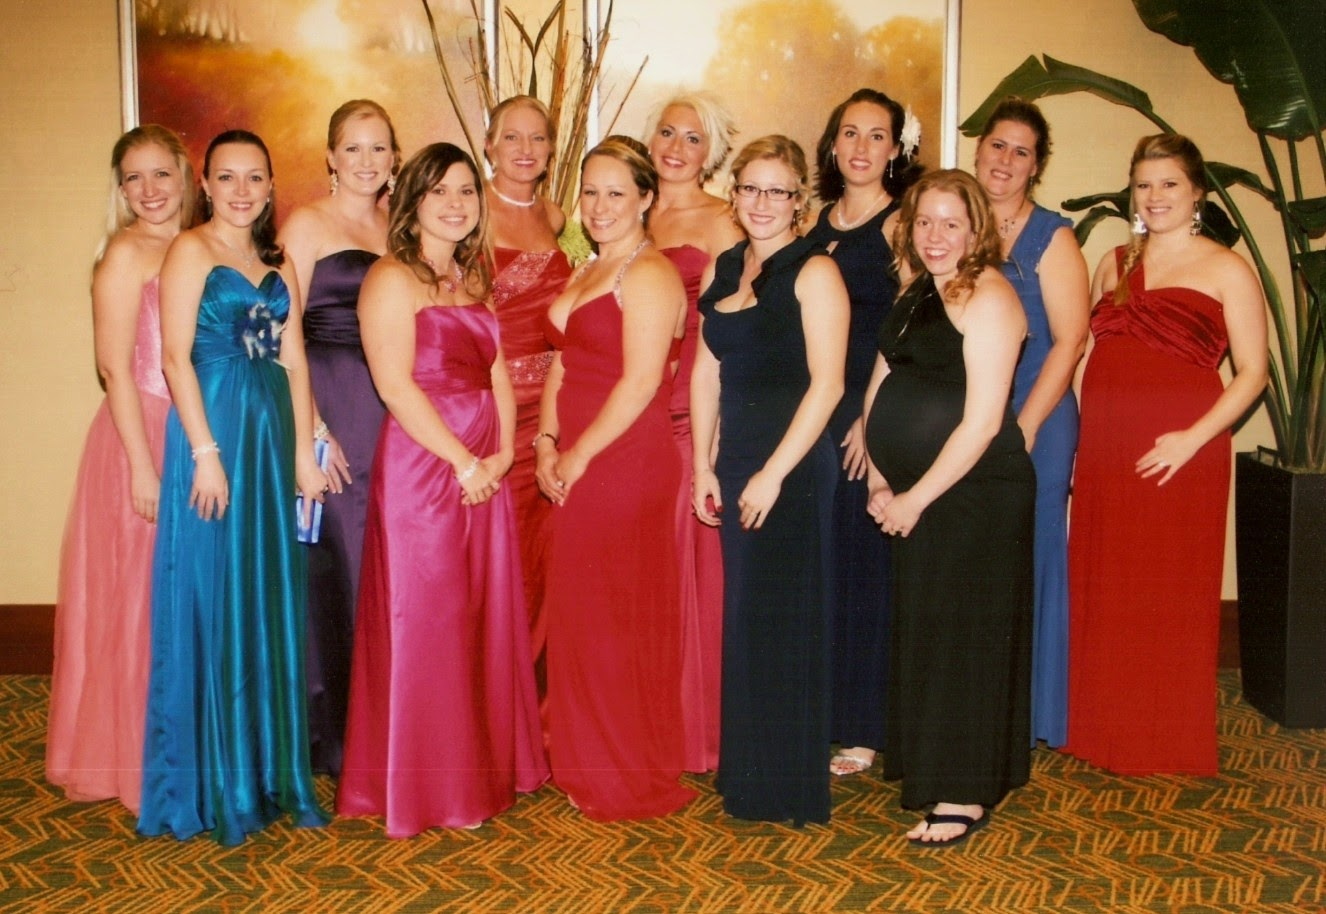 Military Ball Gowns Jacksonville Nc 80